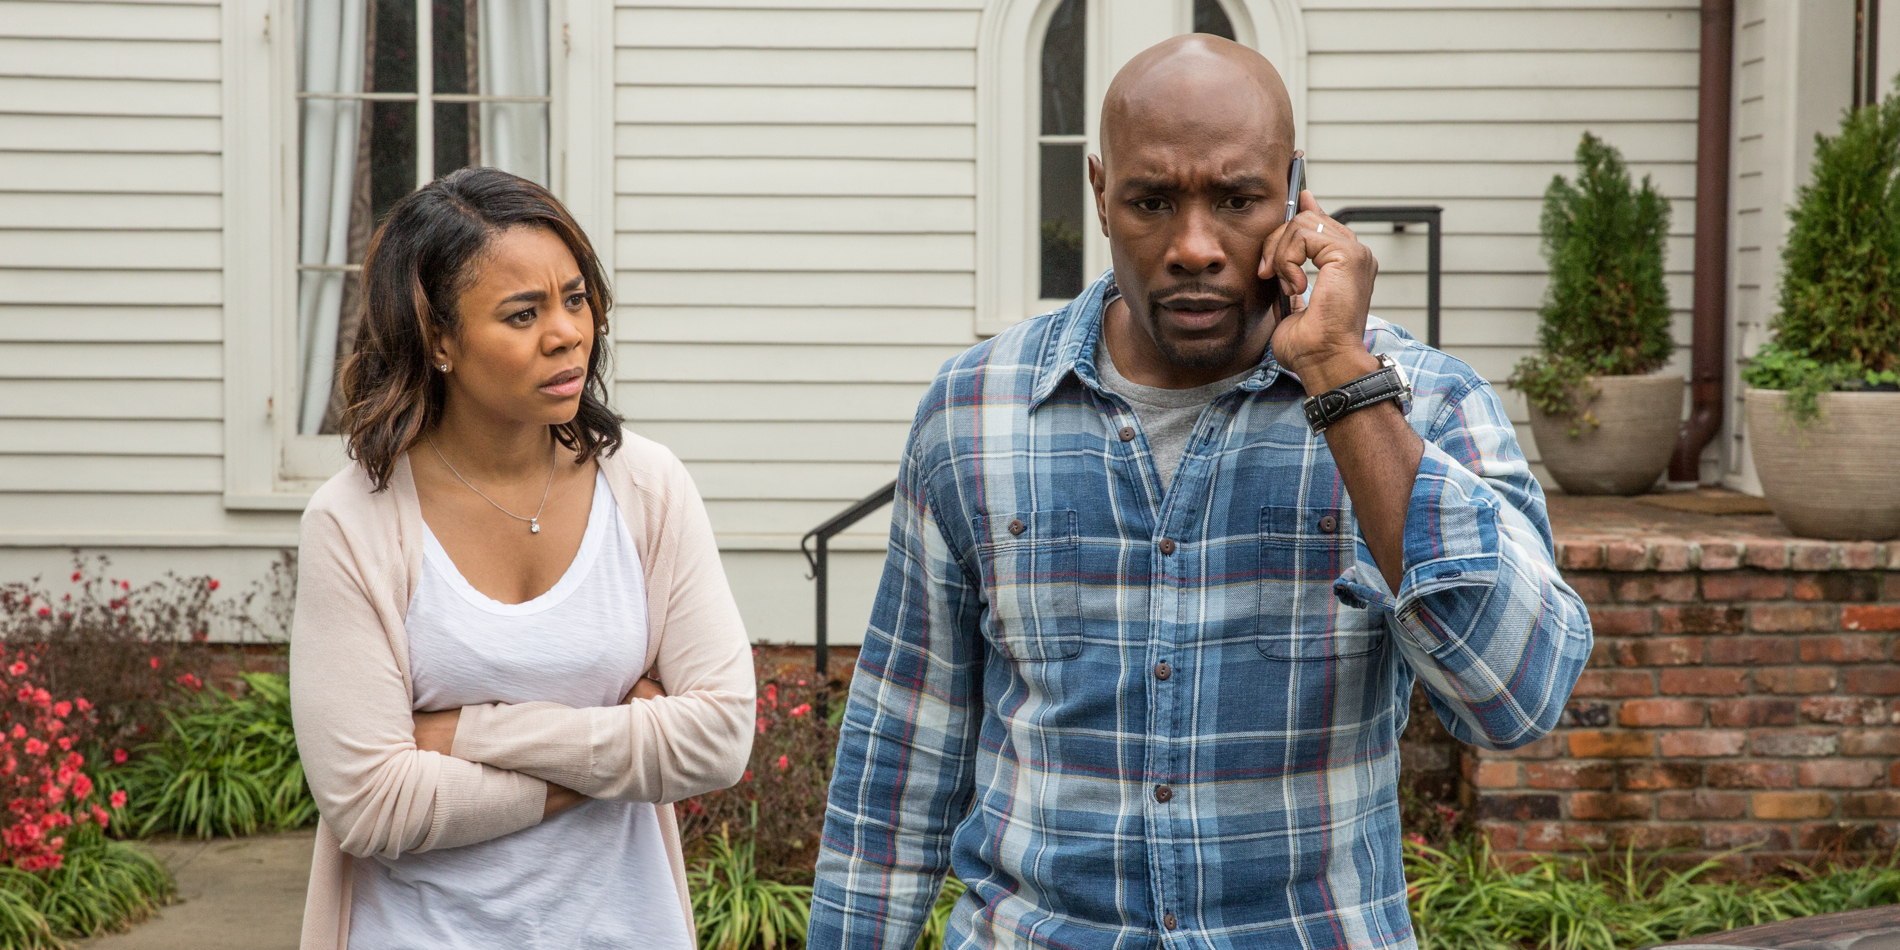 Watch The Trailer For The New Thriller 'When The Bough Breaks'